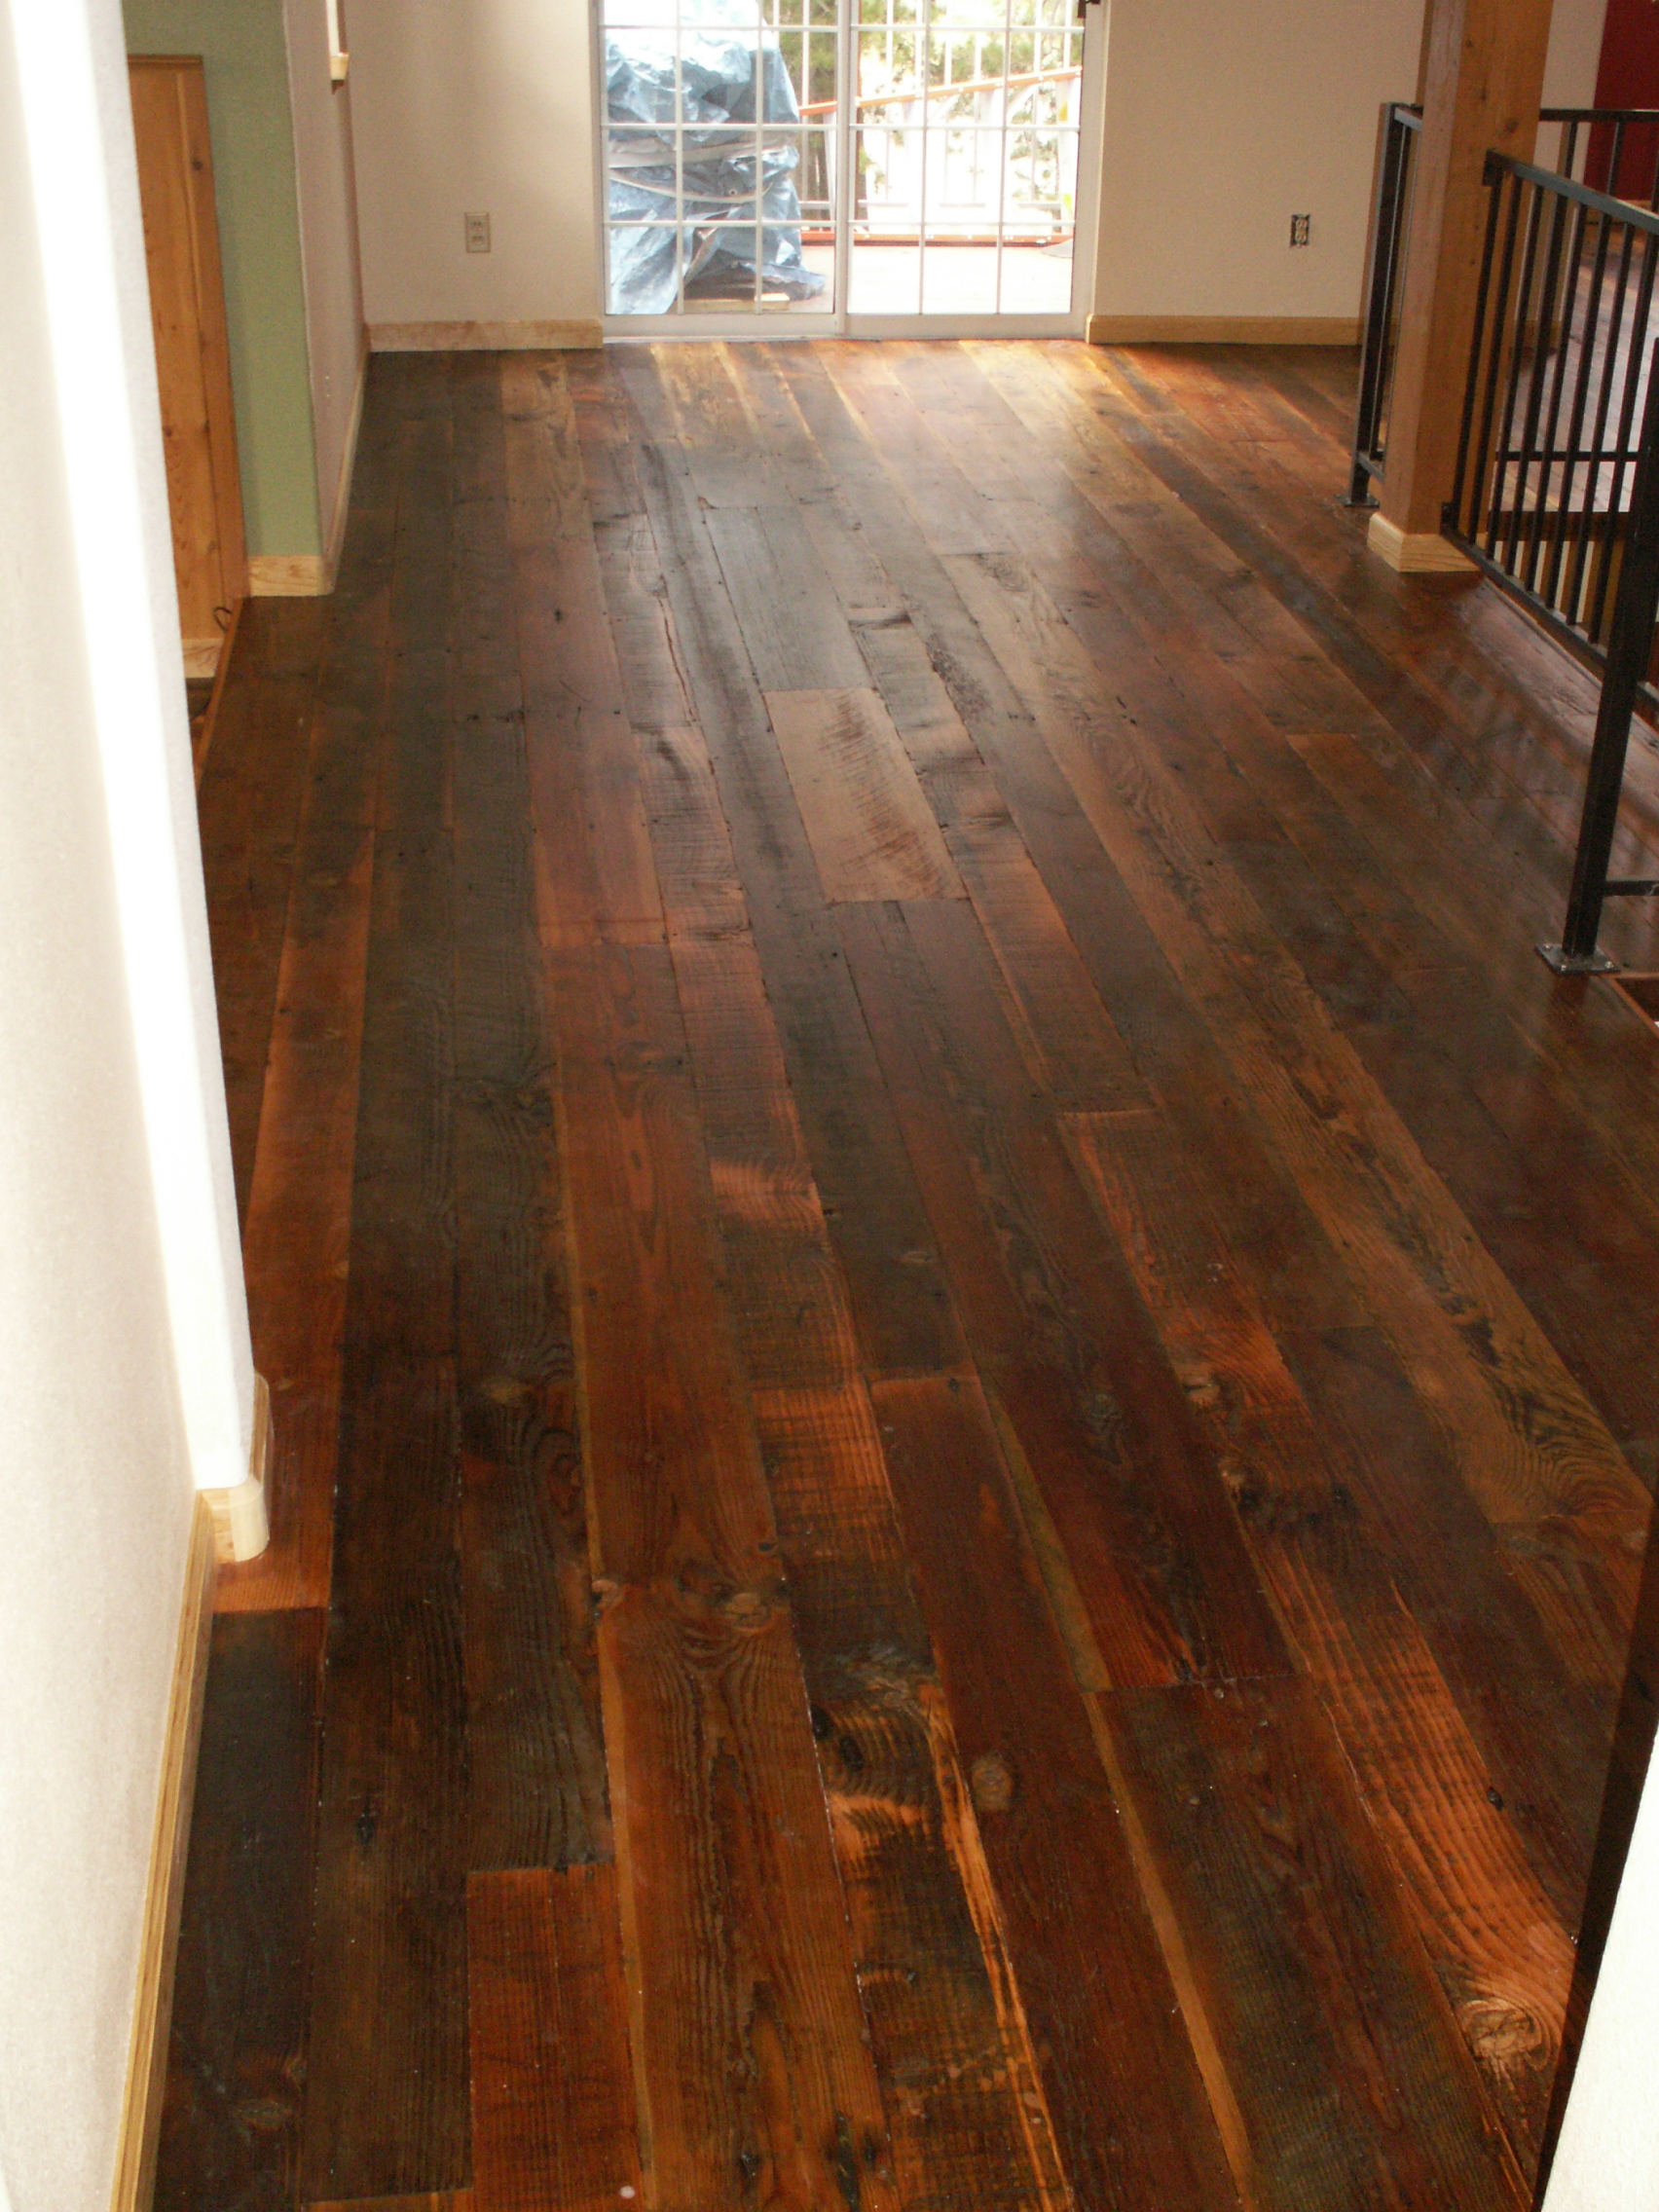 Permalink to Barn Wood Floors